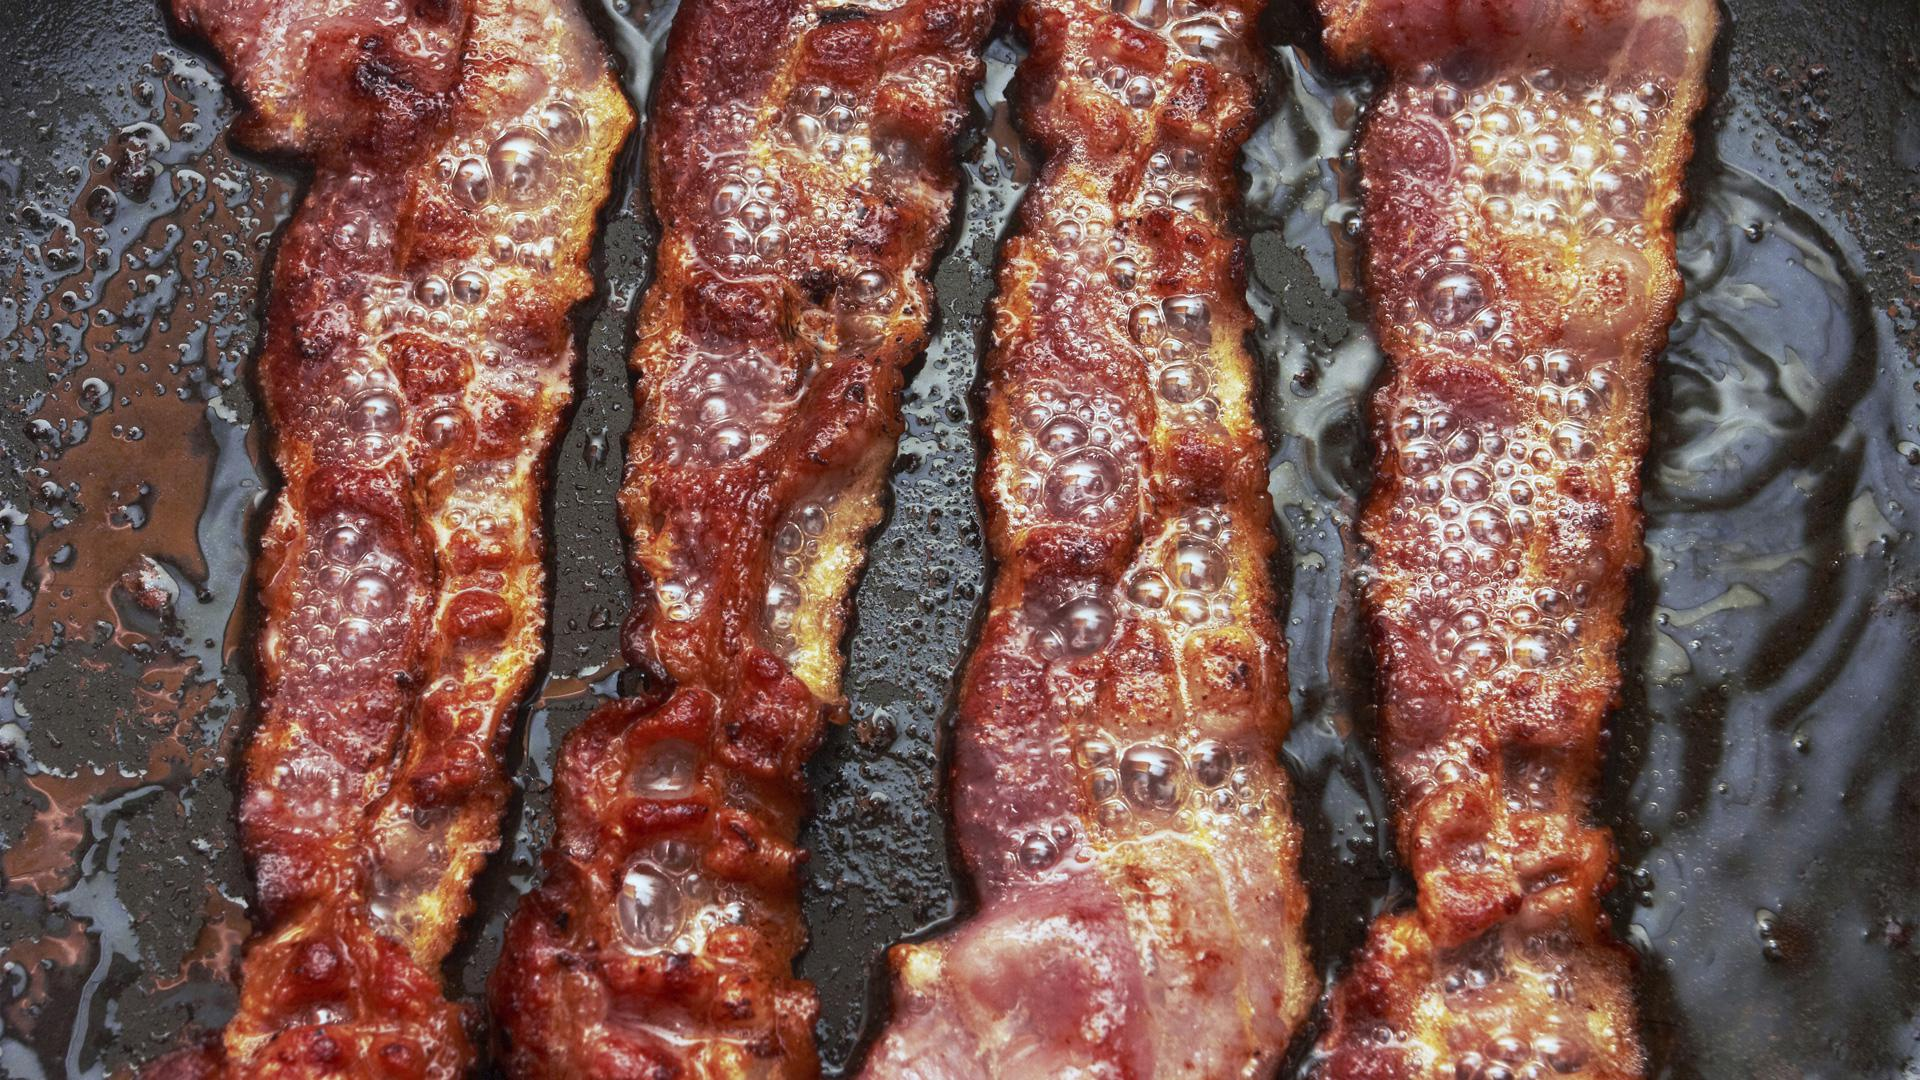 11 Awesome things to do with bacon grease